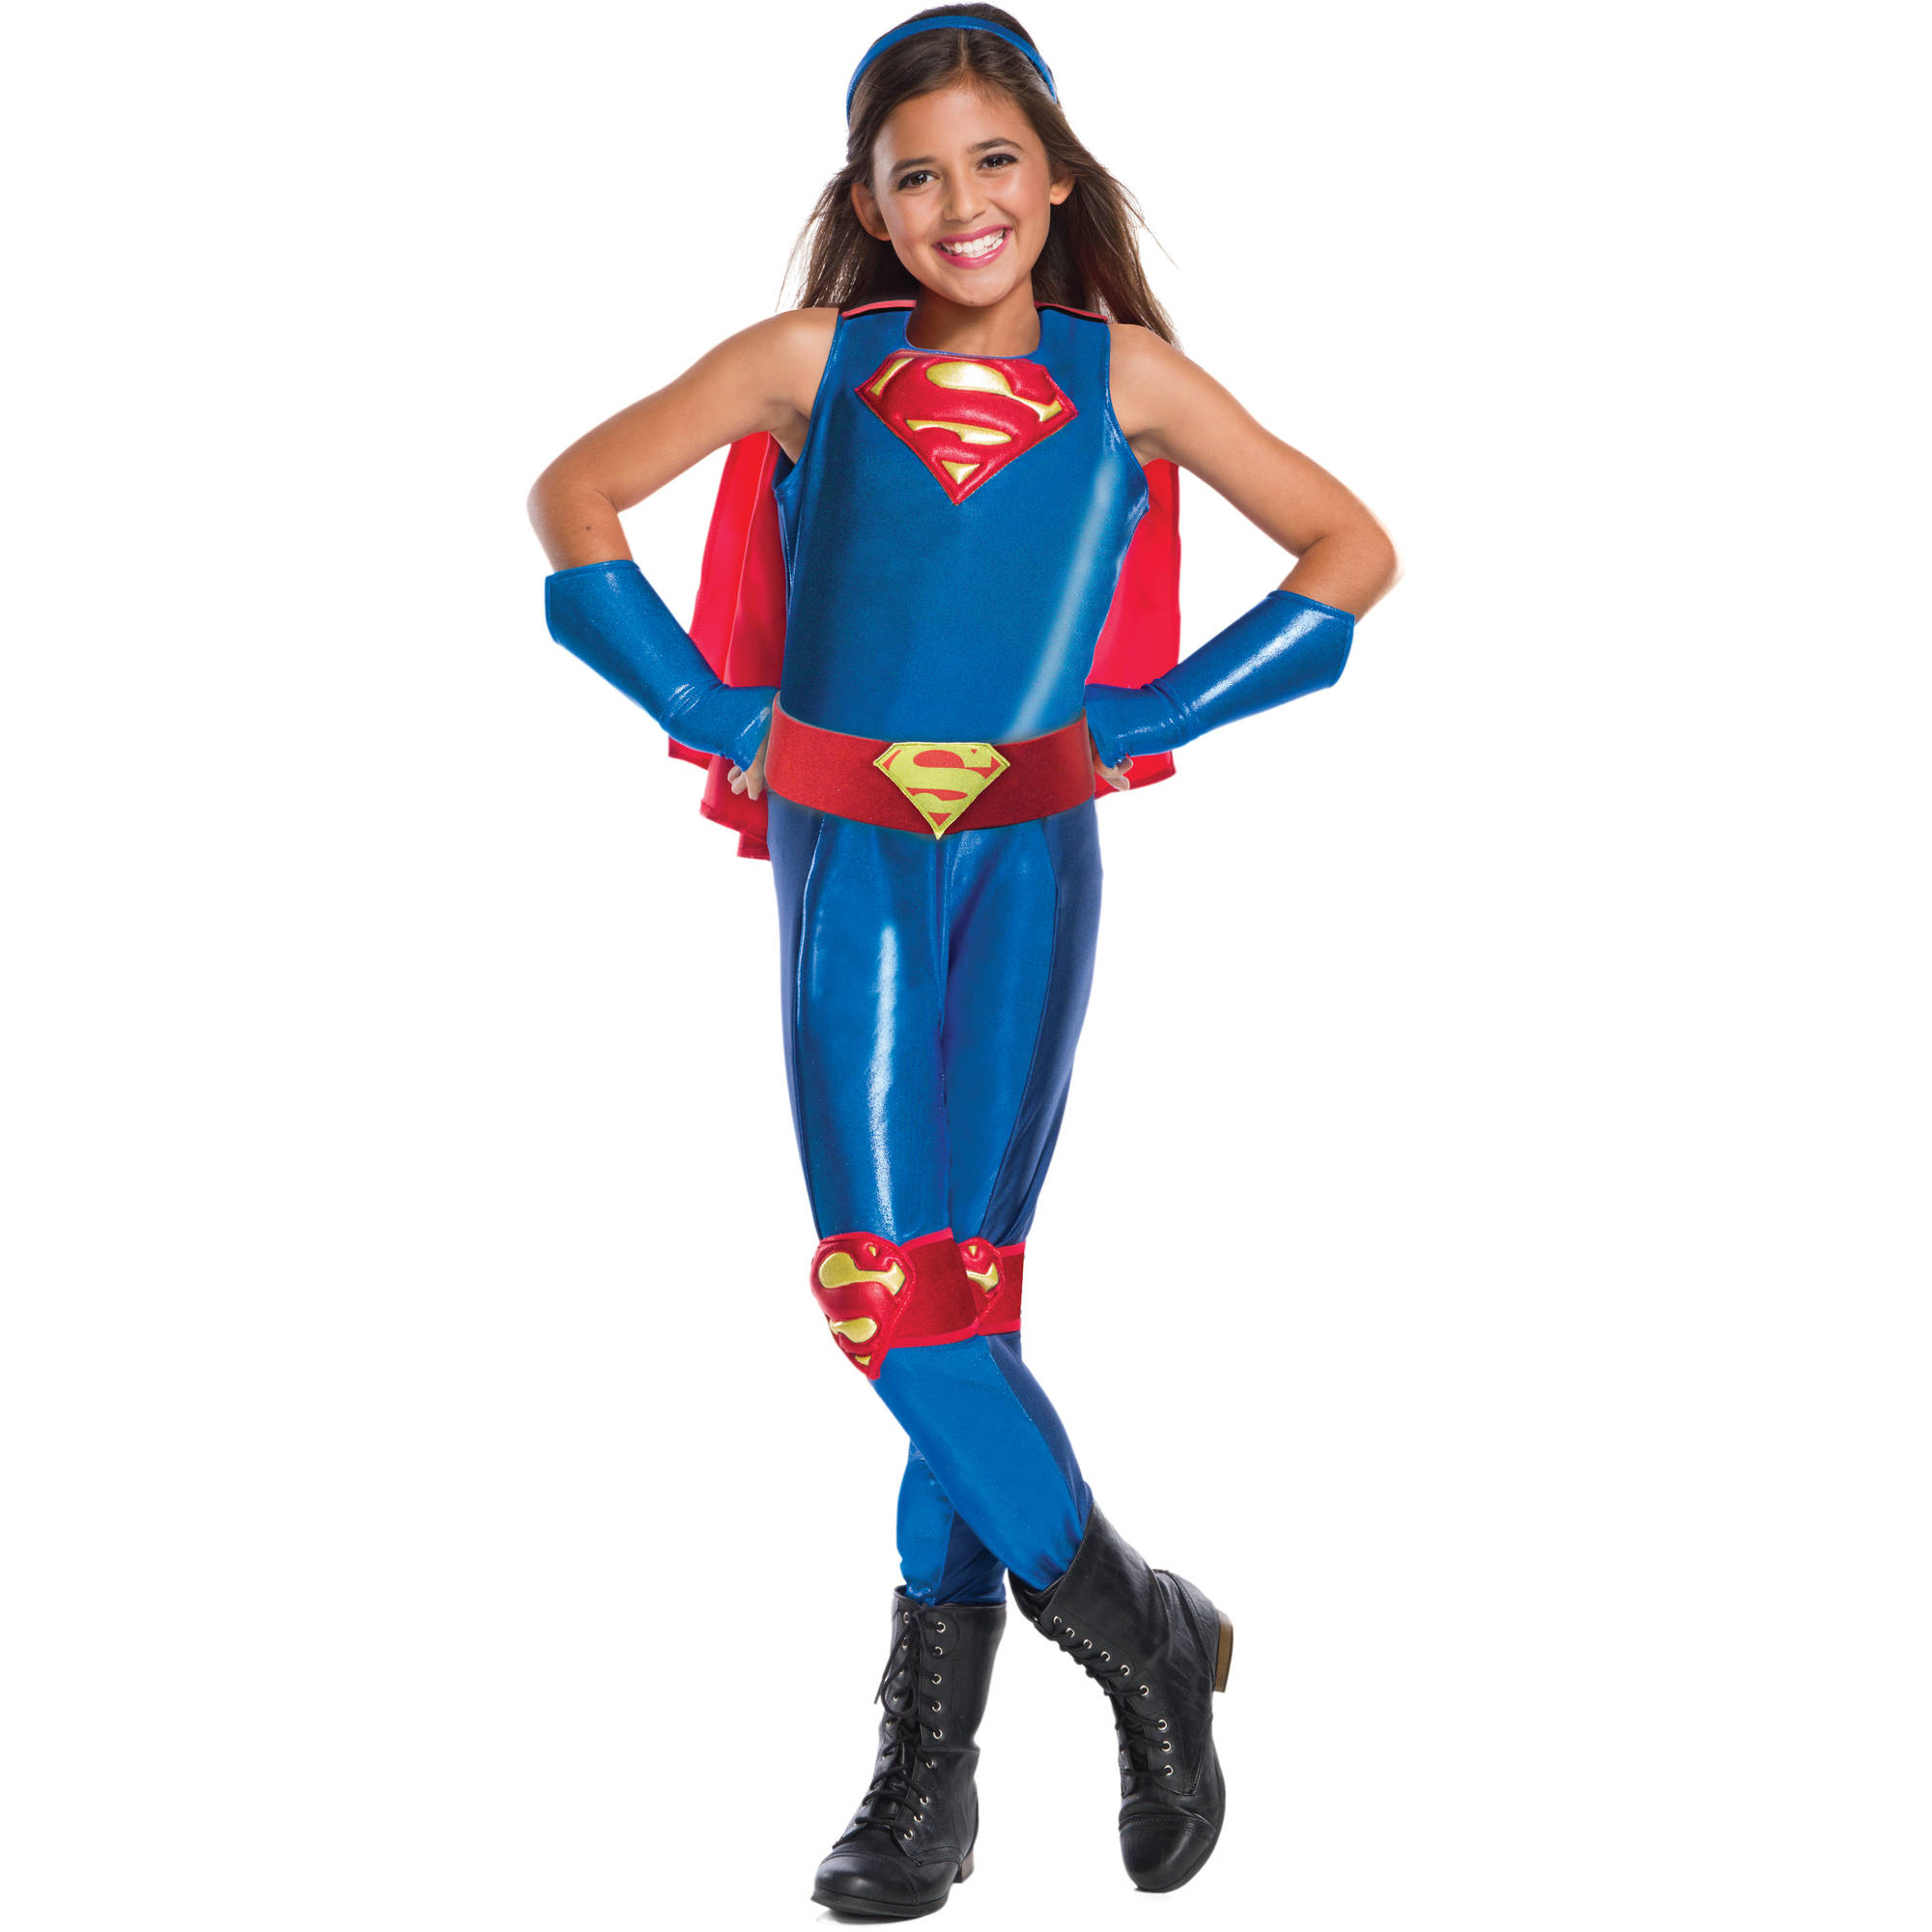 DC Girls Supergirl Child's Costume, Medium (8-10)